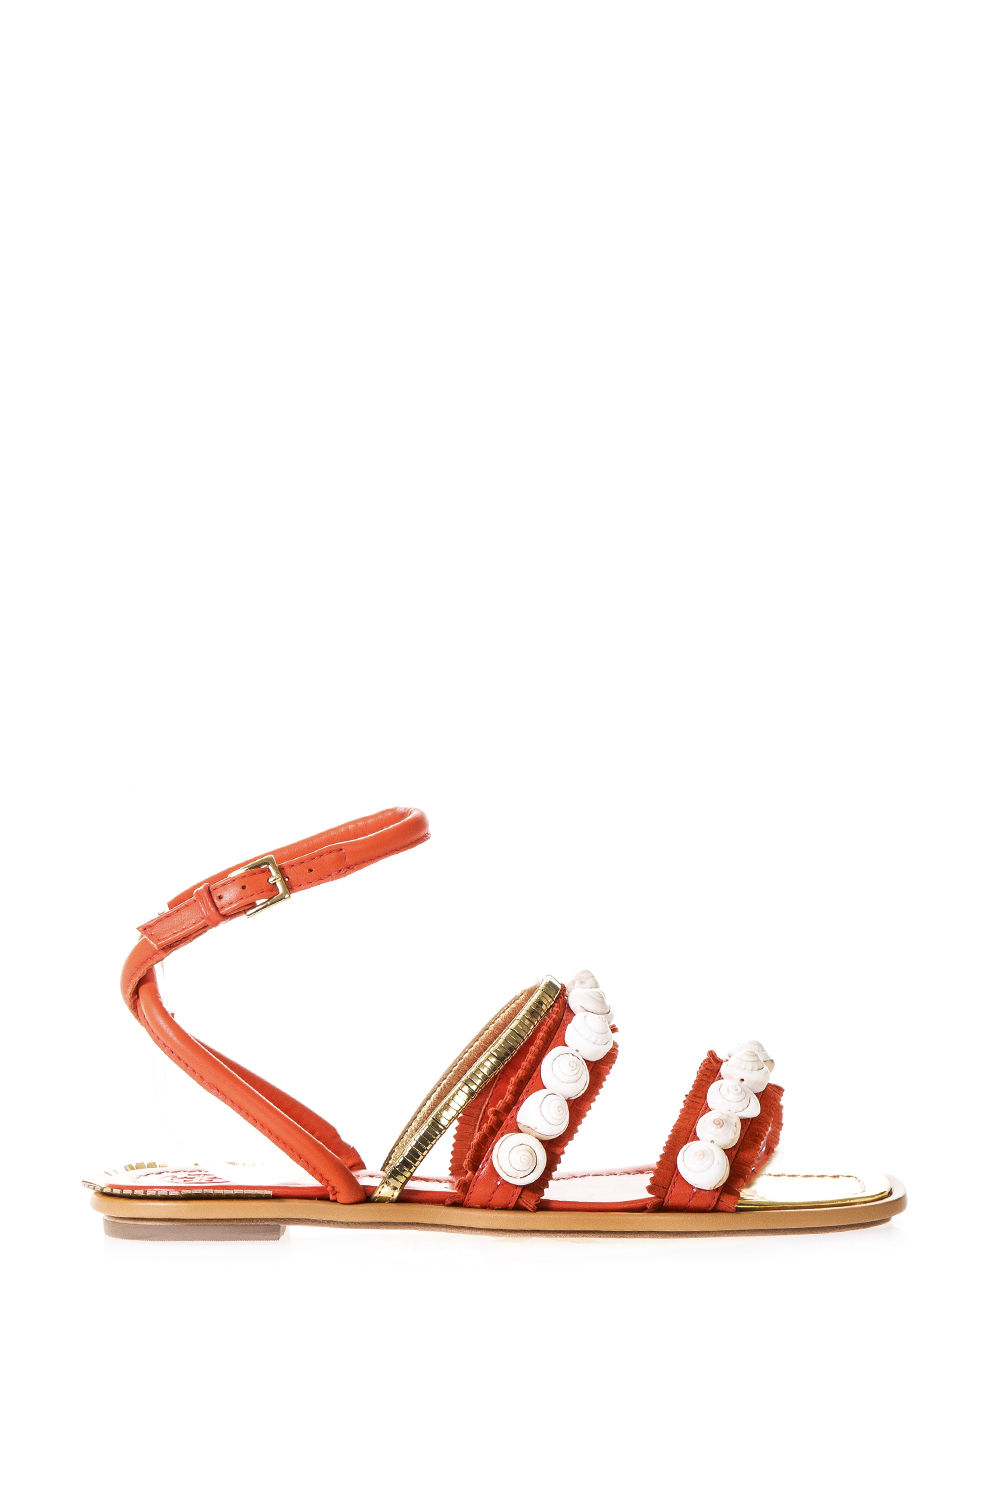 1e1aa5a256218f SINCLAIR EMBELLISHED LEATHER FLATS ss 2017 - TORY BURCH - Boutique Galiano